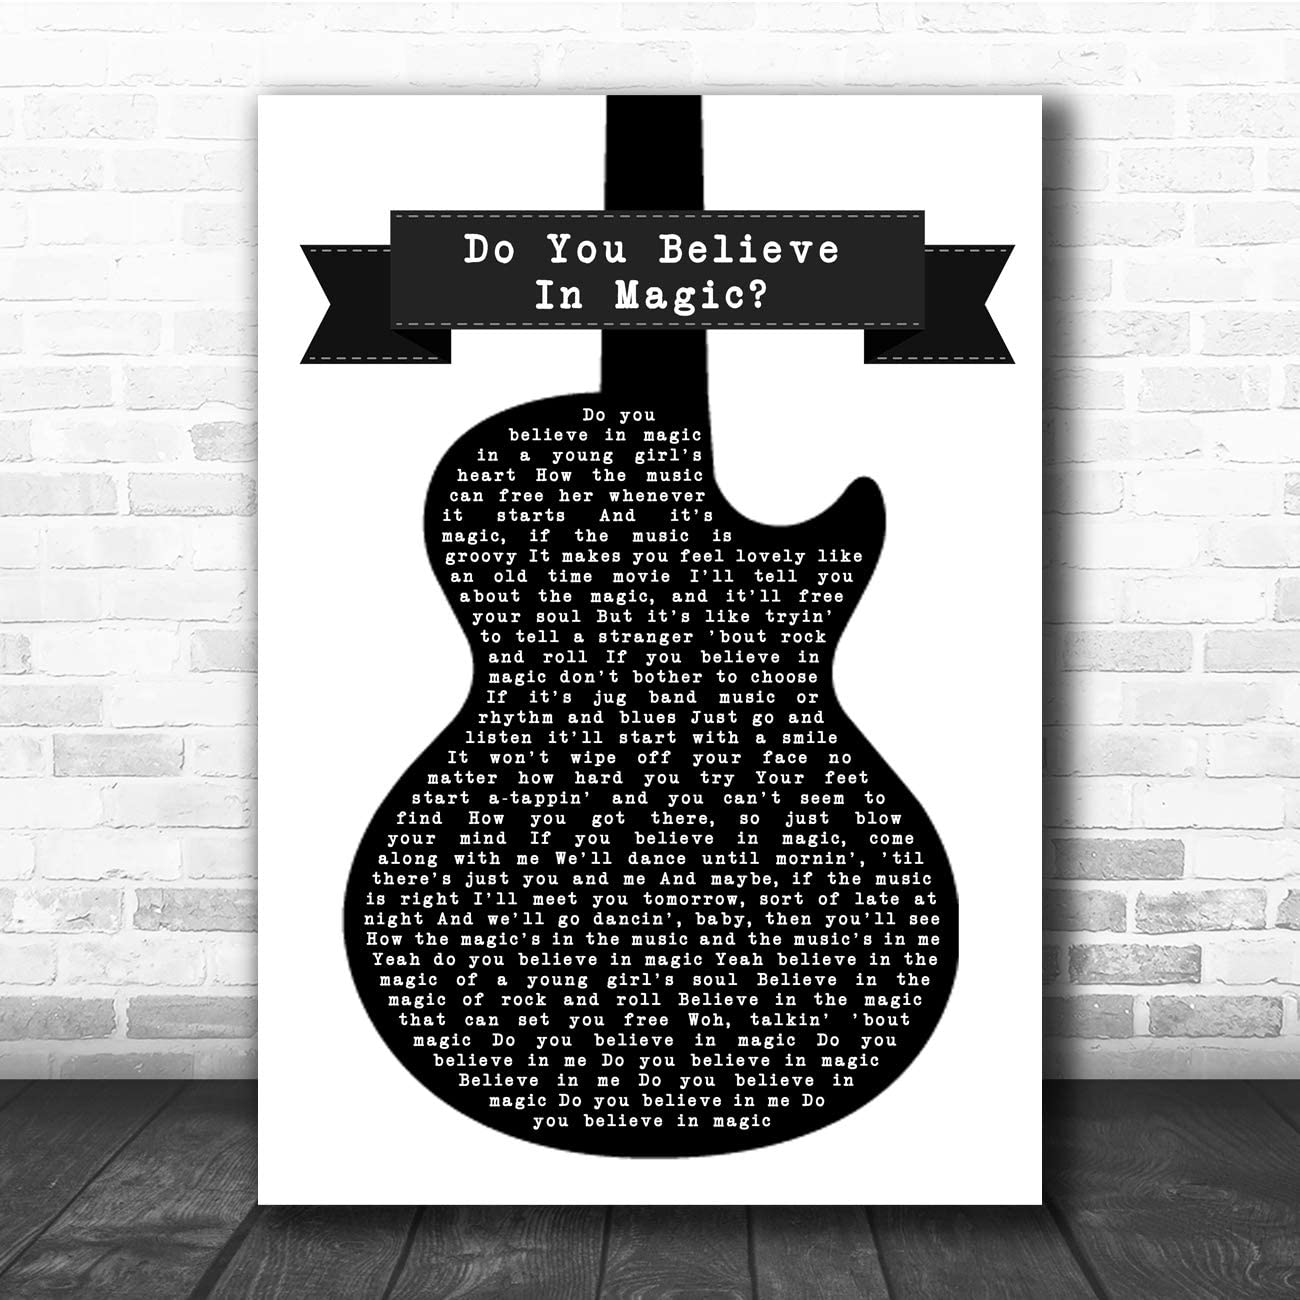 Do You Believe in Magic - Letra, diseño de guitarra, color blanco y negro: Amazon.es: Oficina y papelería